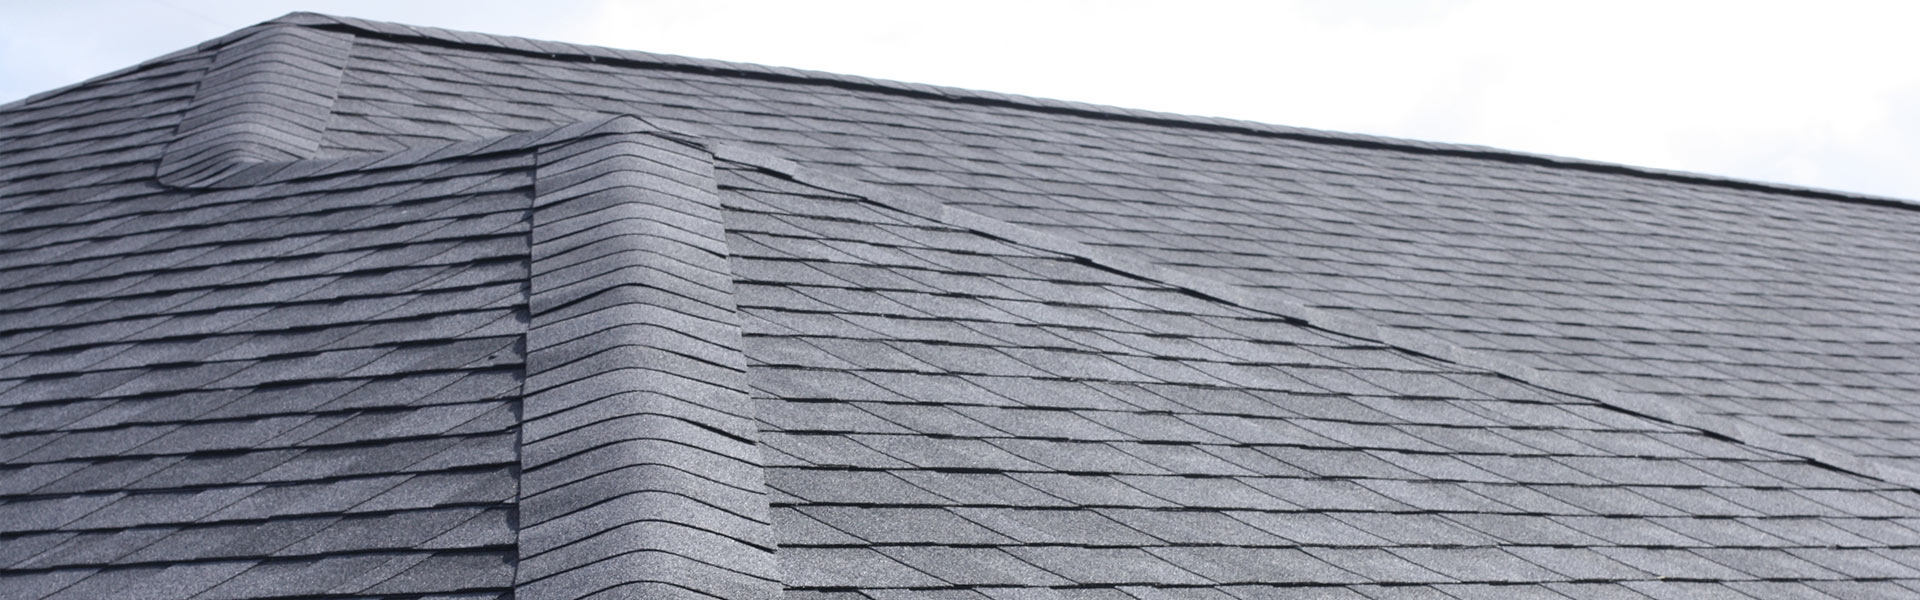 Professional Roofing Services Watershed Get A Free Quote